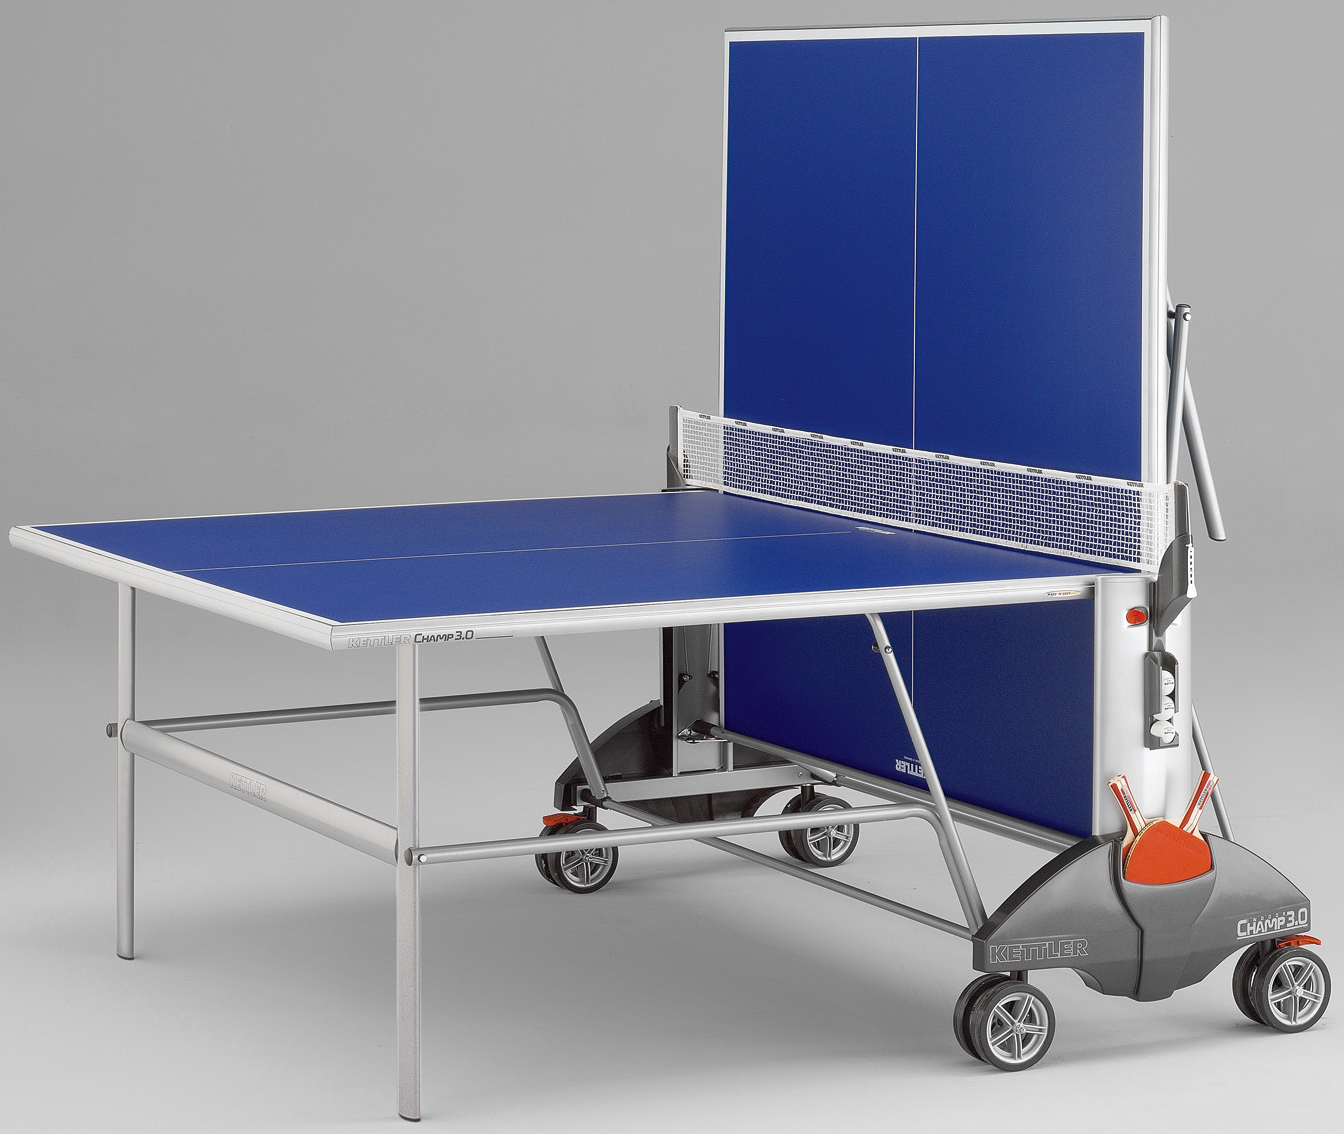 Kettler champ 3 0 outdoor ping pong table - Table ping pong kettler outdoor ...